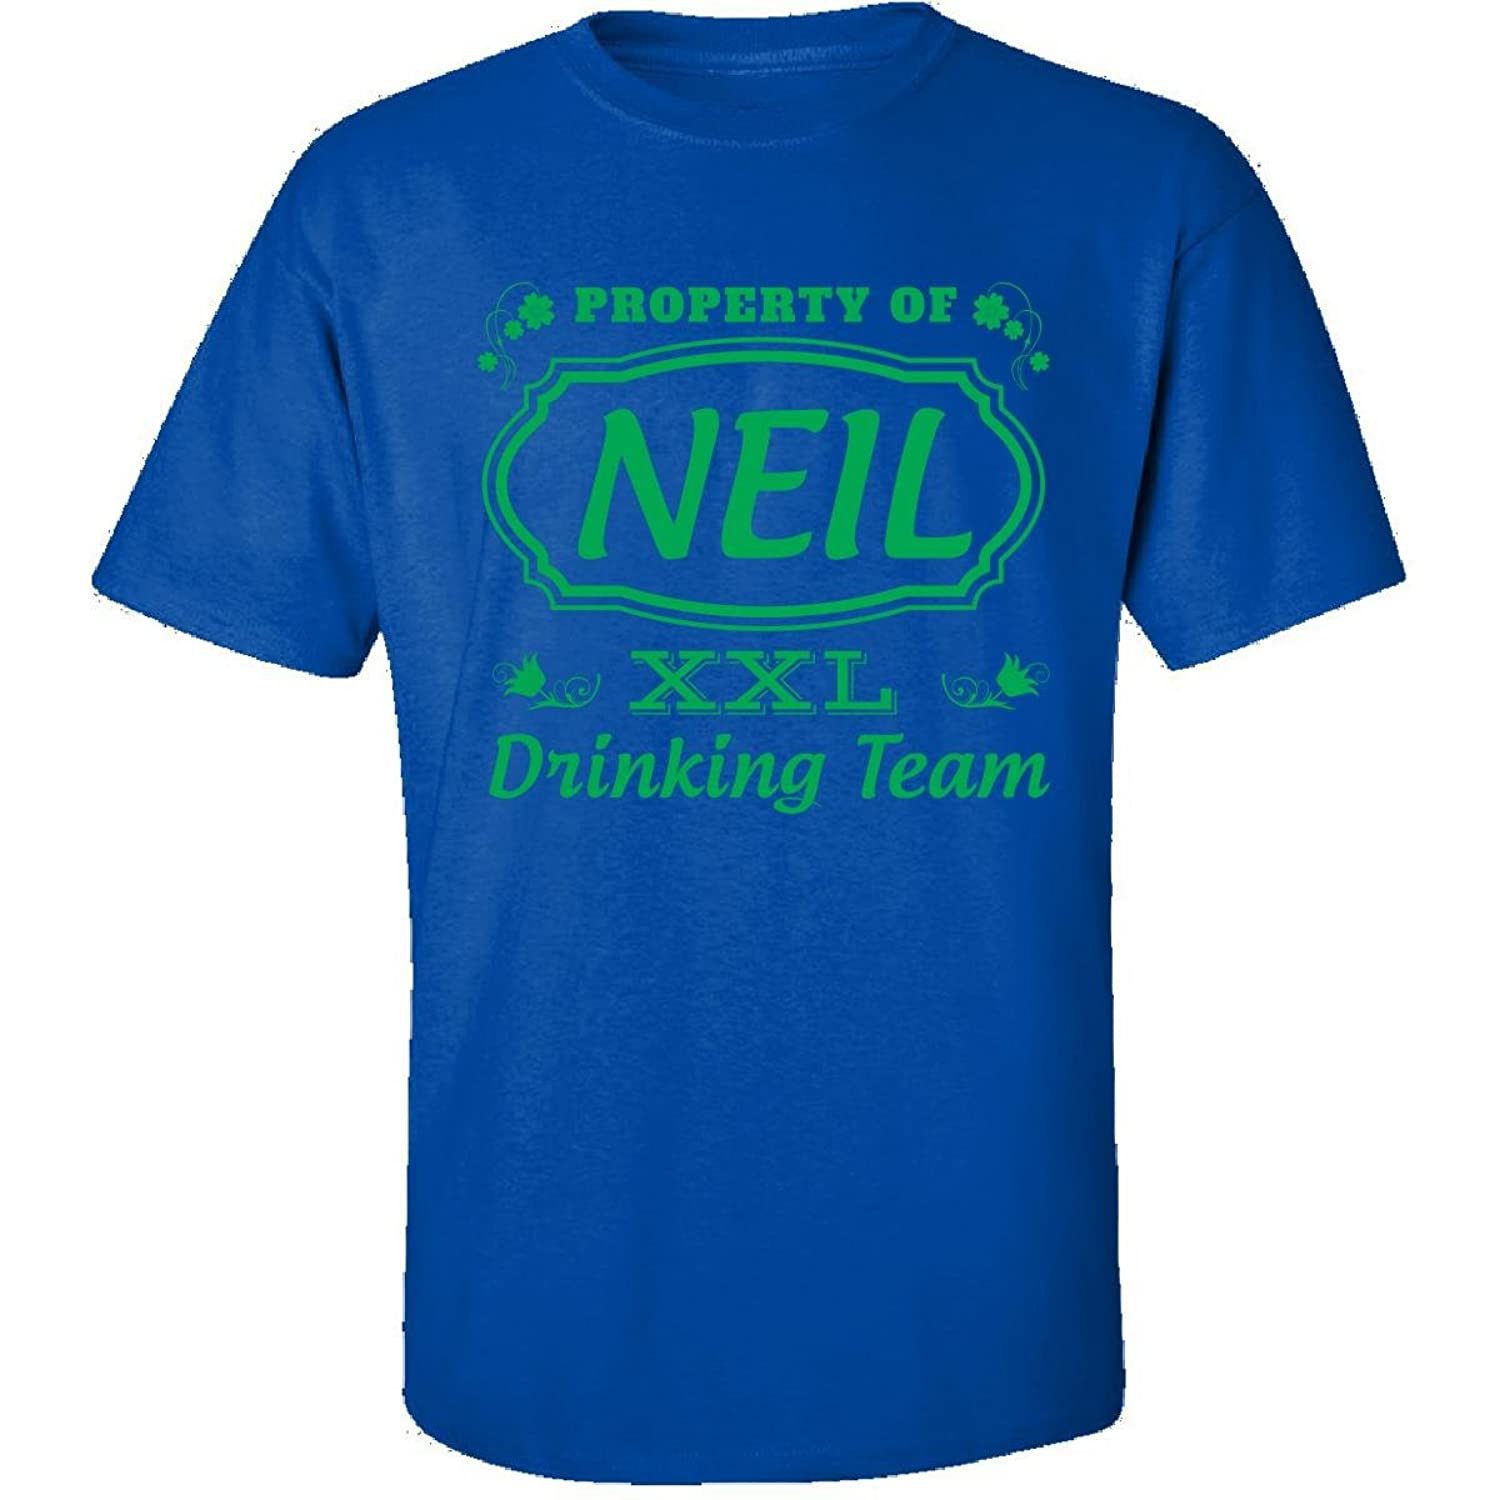 Property Of Neil St Patrick Day Beer Drinking Team - Adult Shirt